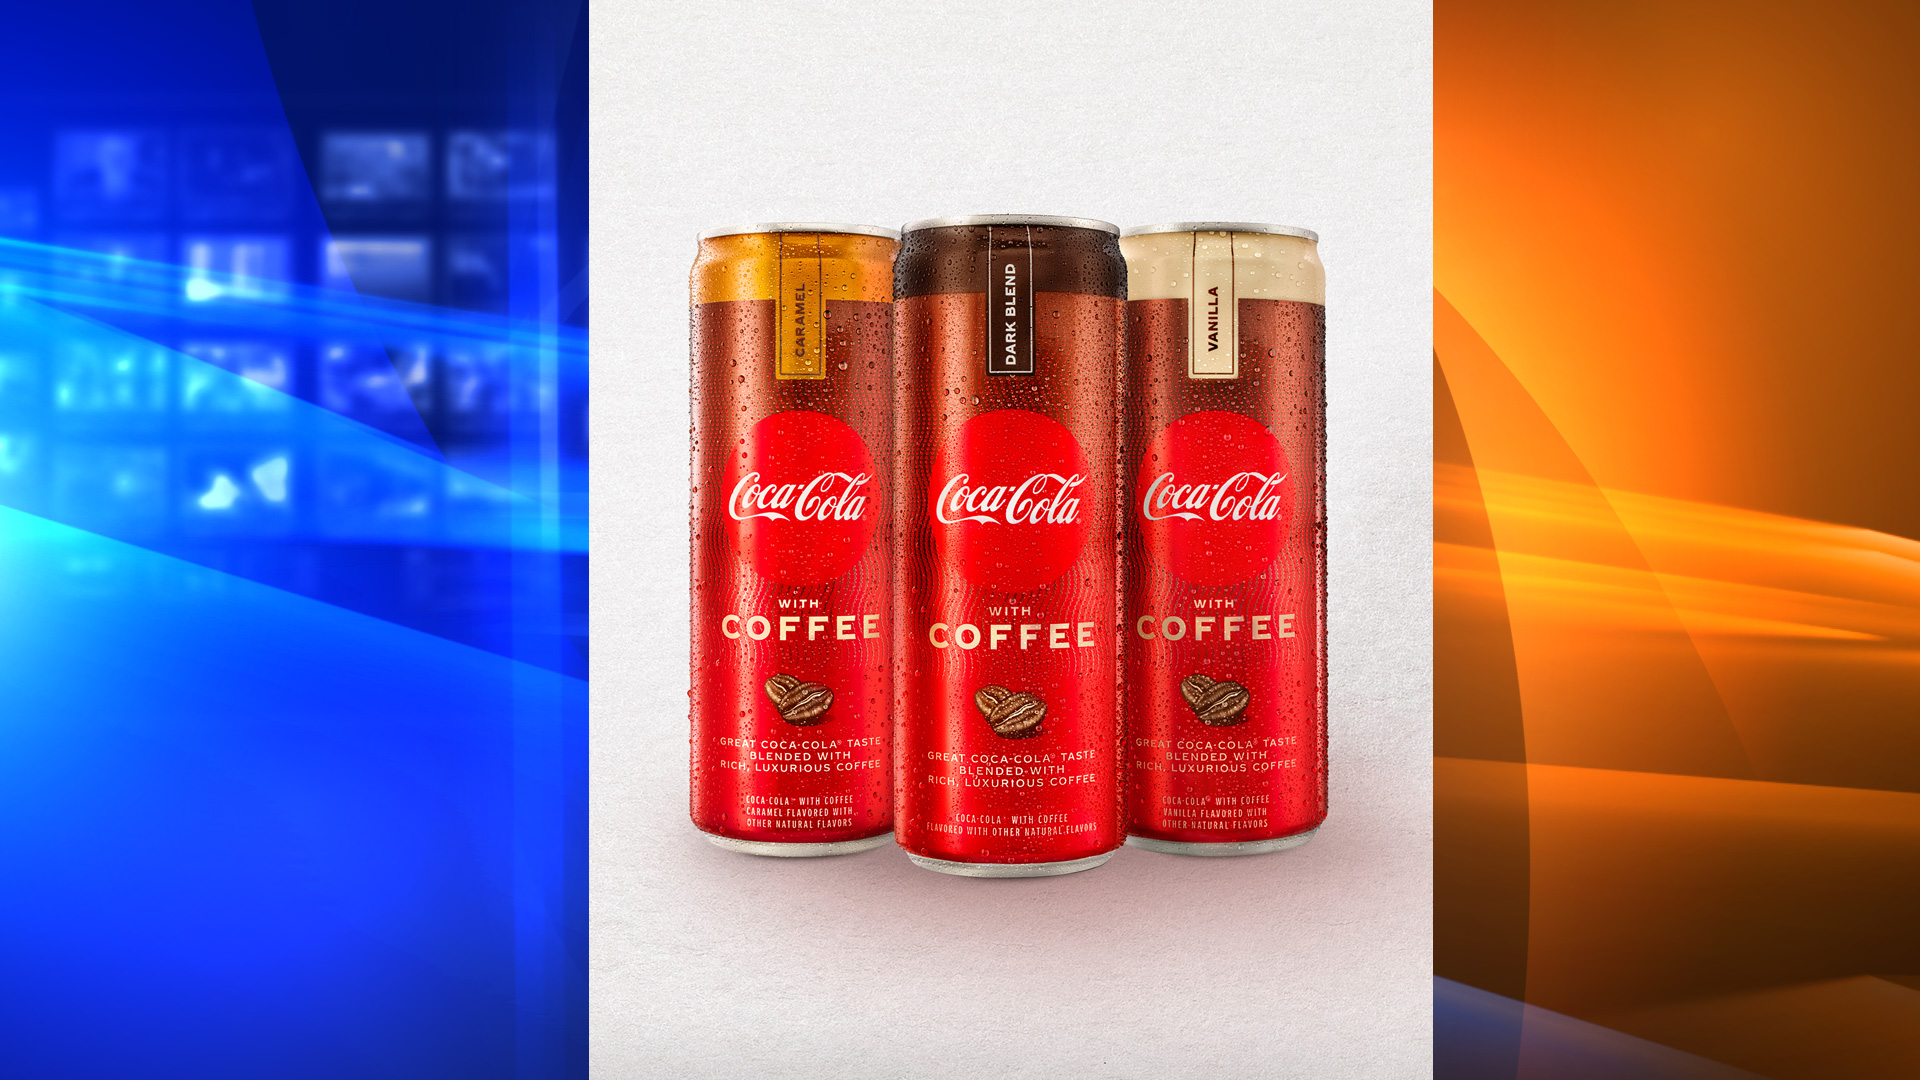 Coke with coffee will debut in US stores in January. (Coca-Cola)